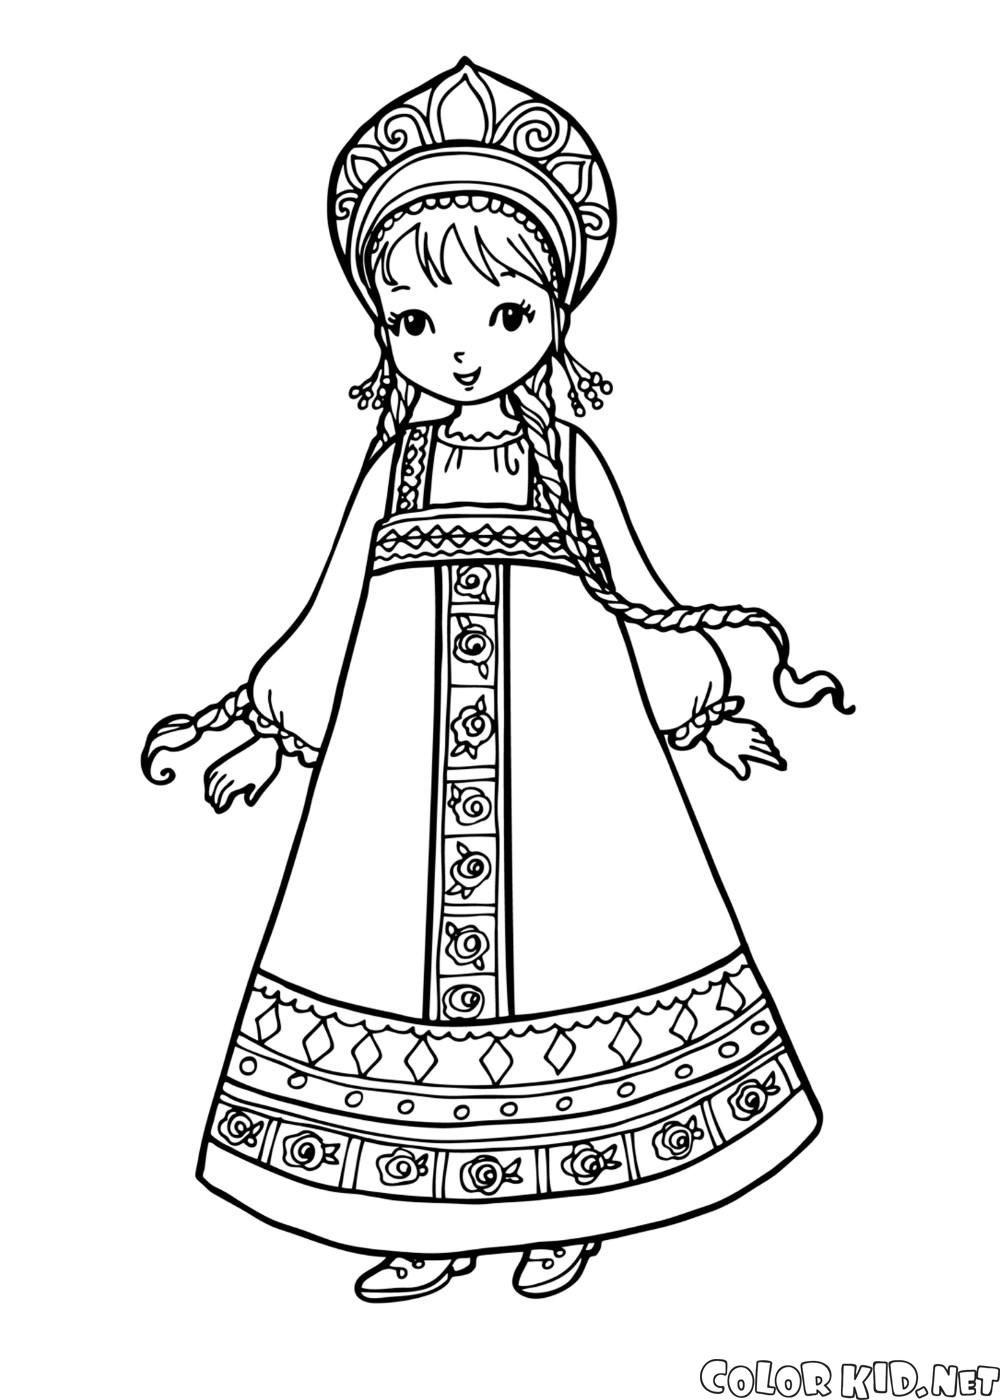 Coloring page girl in national costume for Outfit coloring pages